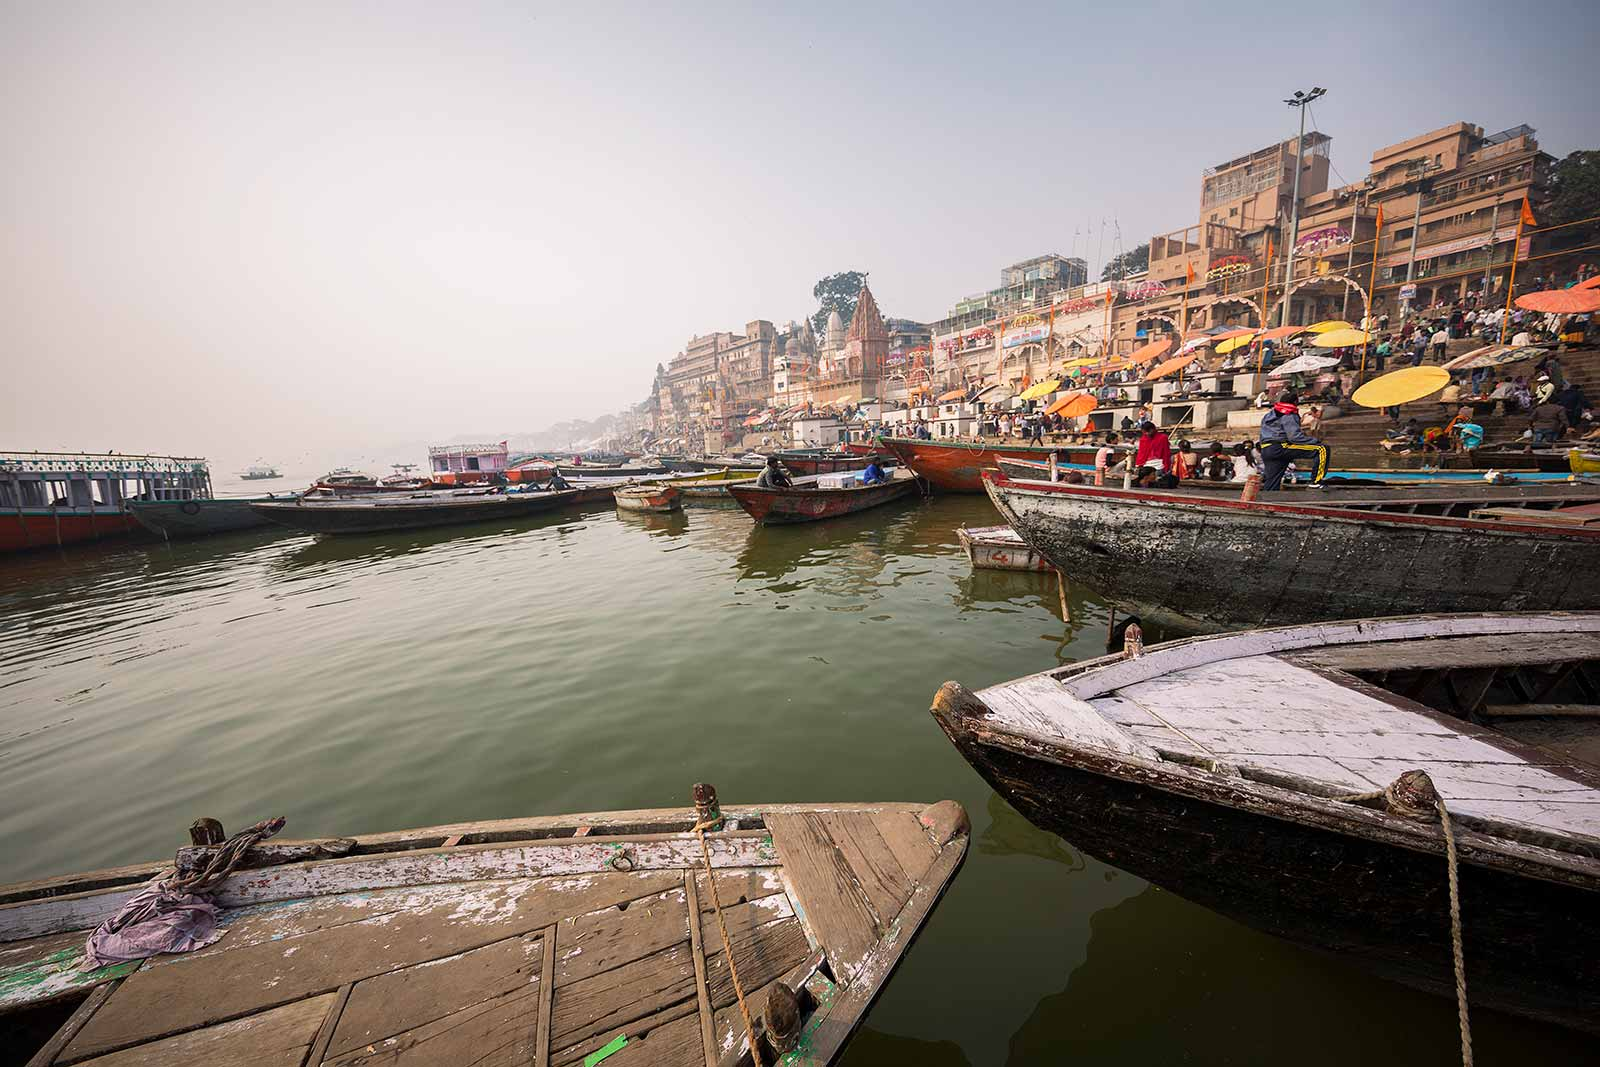 Hindus believe that they have three mothers: the mother who has given them birth, Mother India and Mother Ganga. Therefore, a ride along this majestic river is an absolute must when visiting Varanasi.